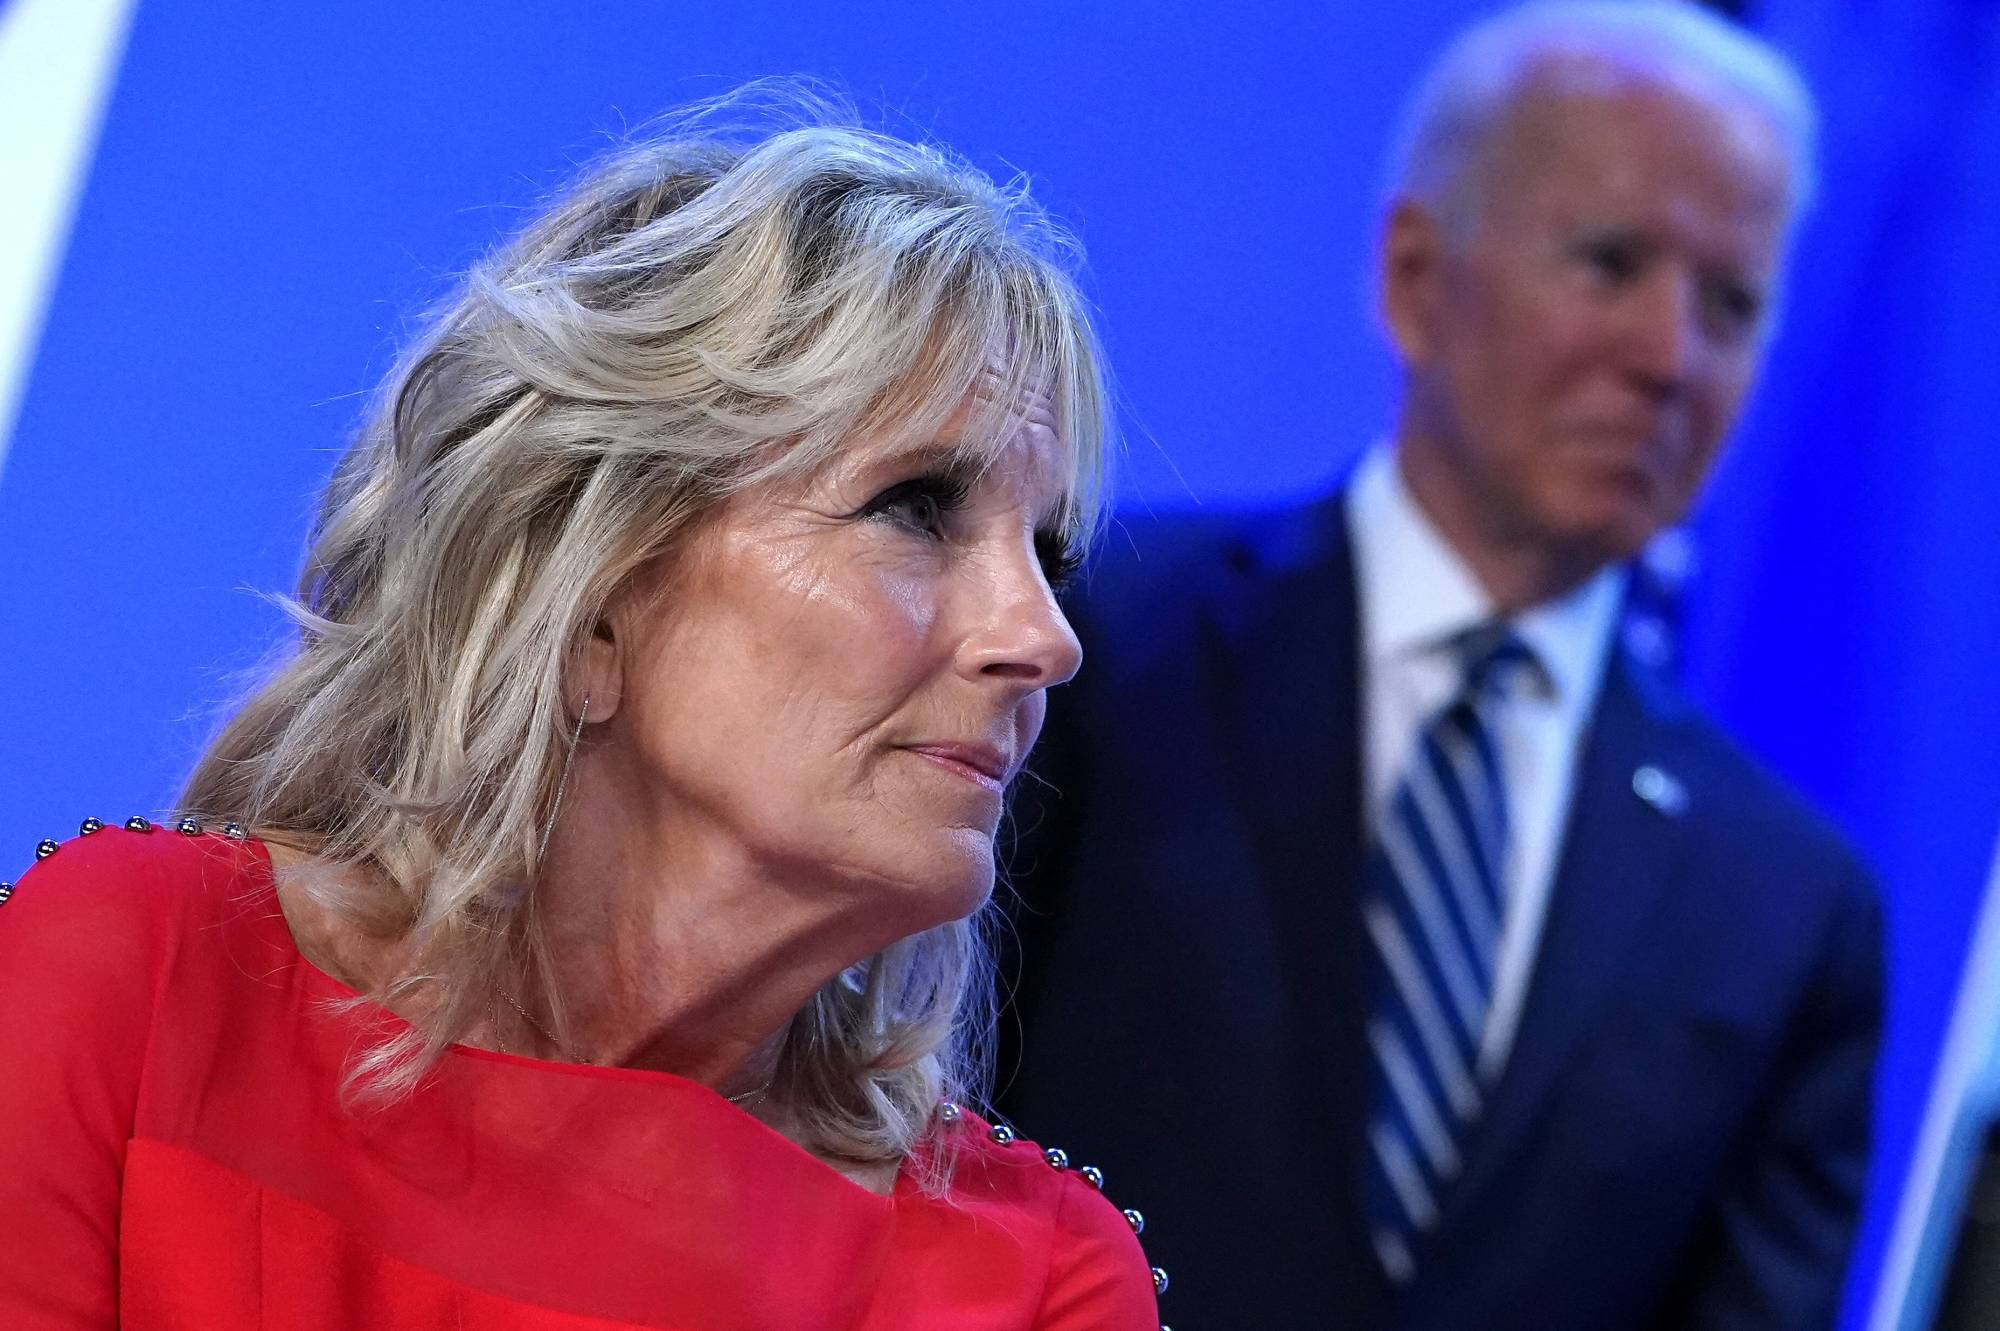 The White House on Tuesday said first lady Jill Biden will attend the Tokyo Olympics. | AFP-JIJI